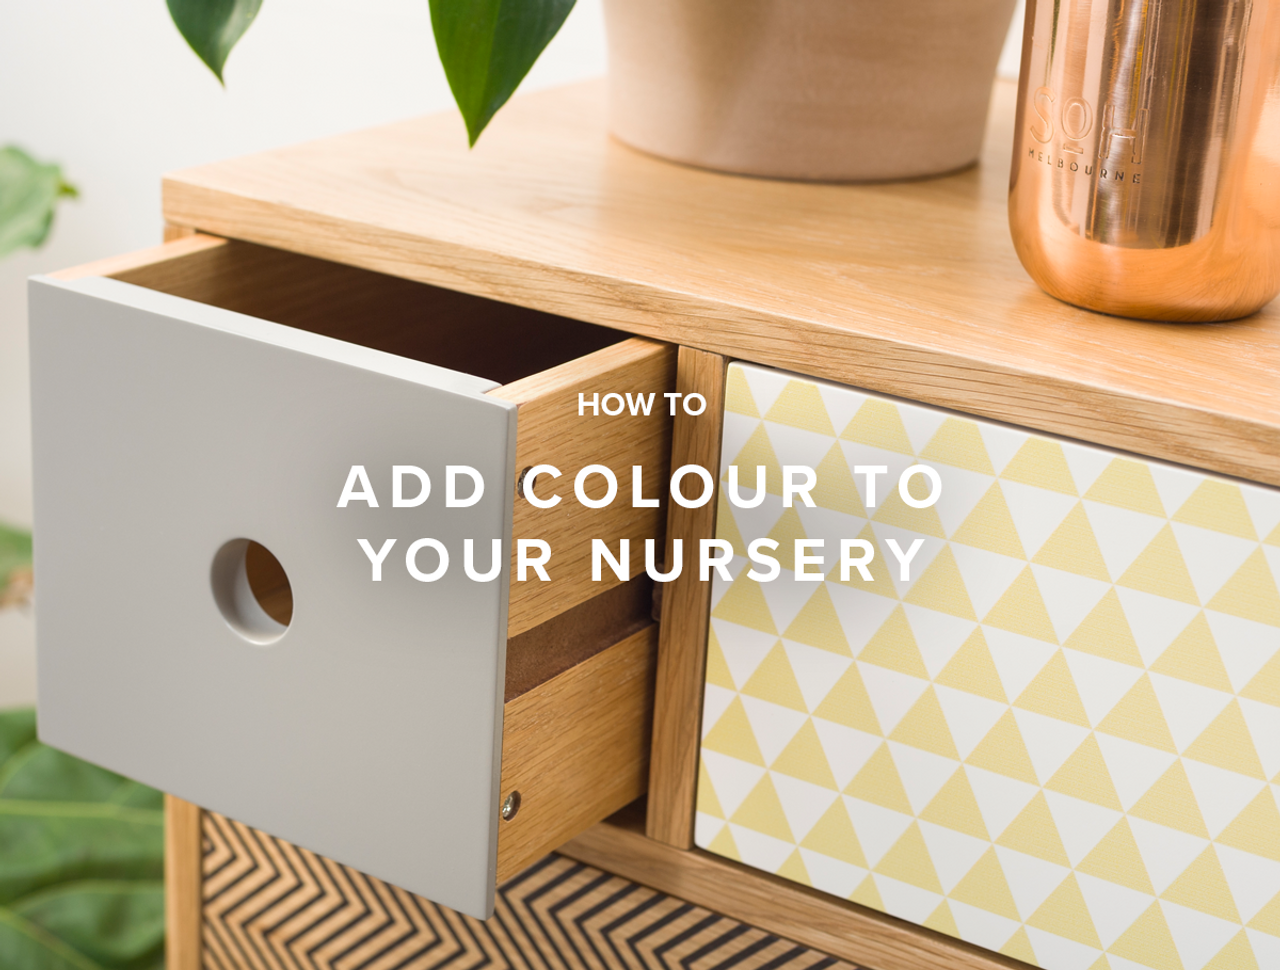 How to Add Colour to your Nursery